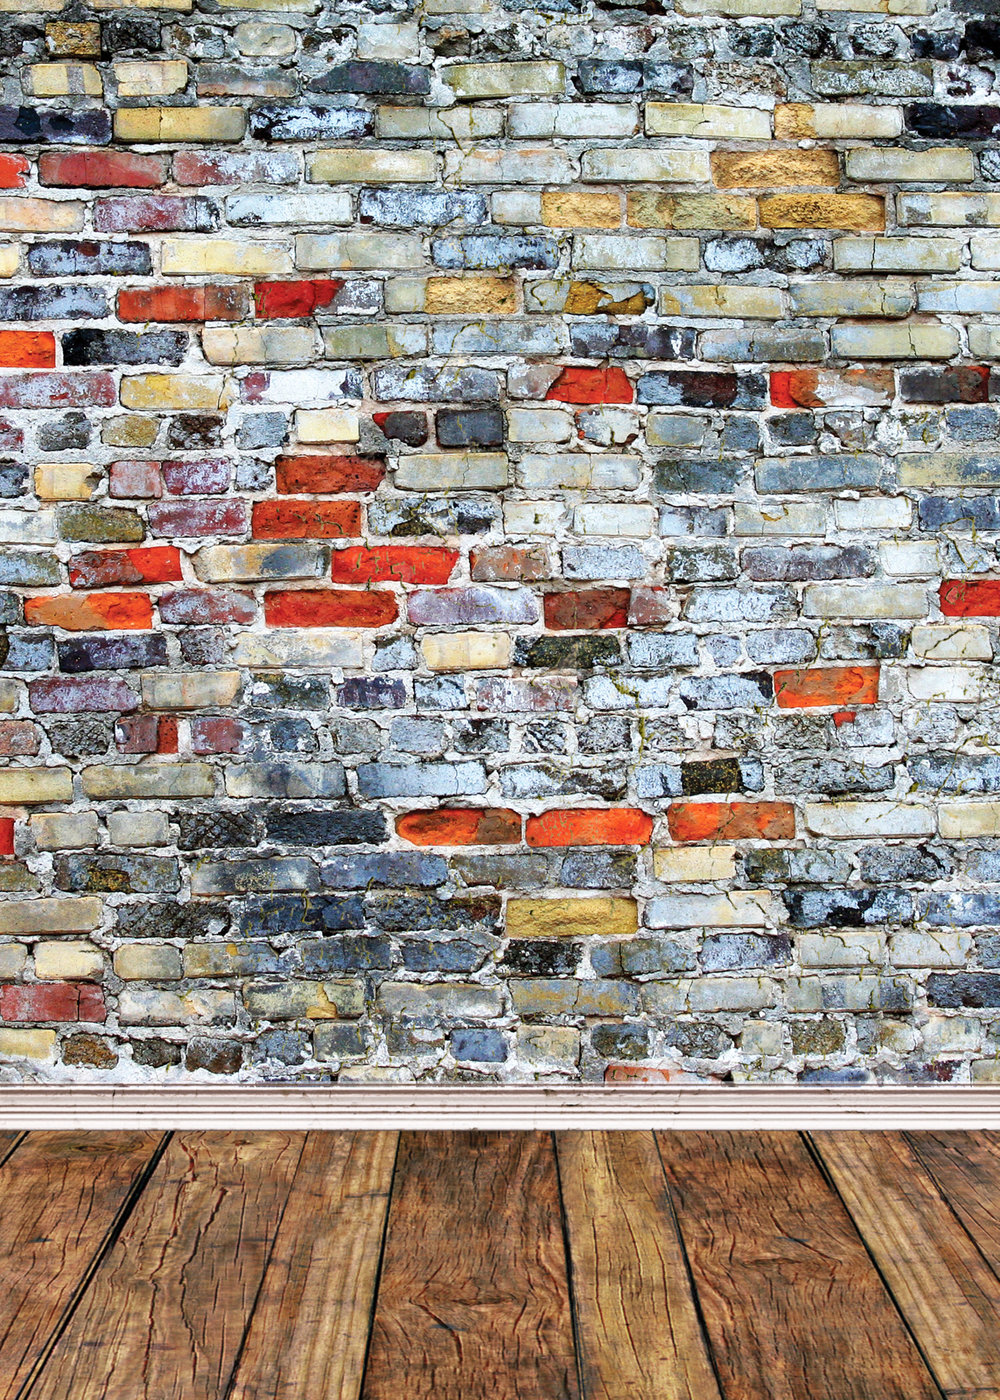 Background G - Colorful Brick